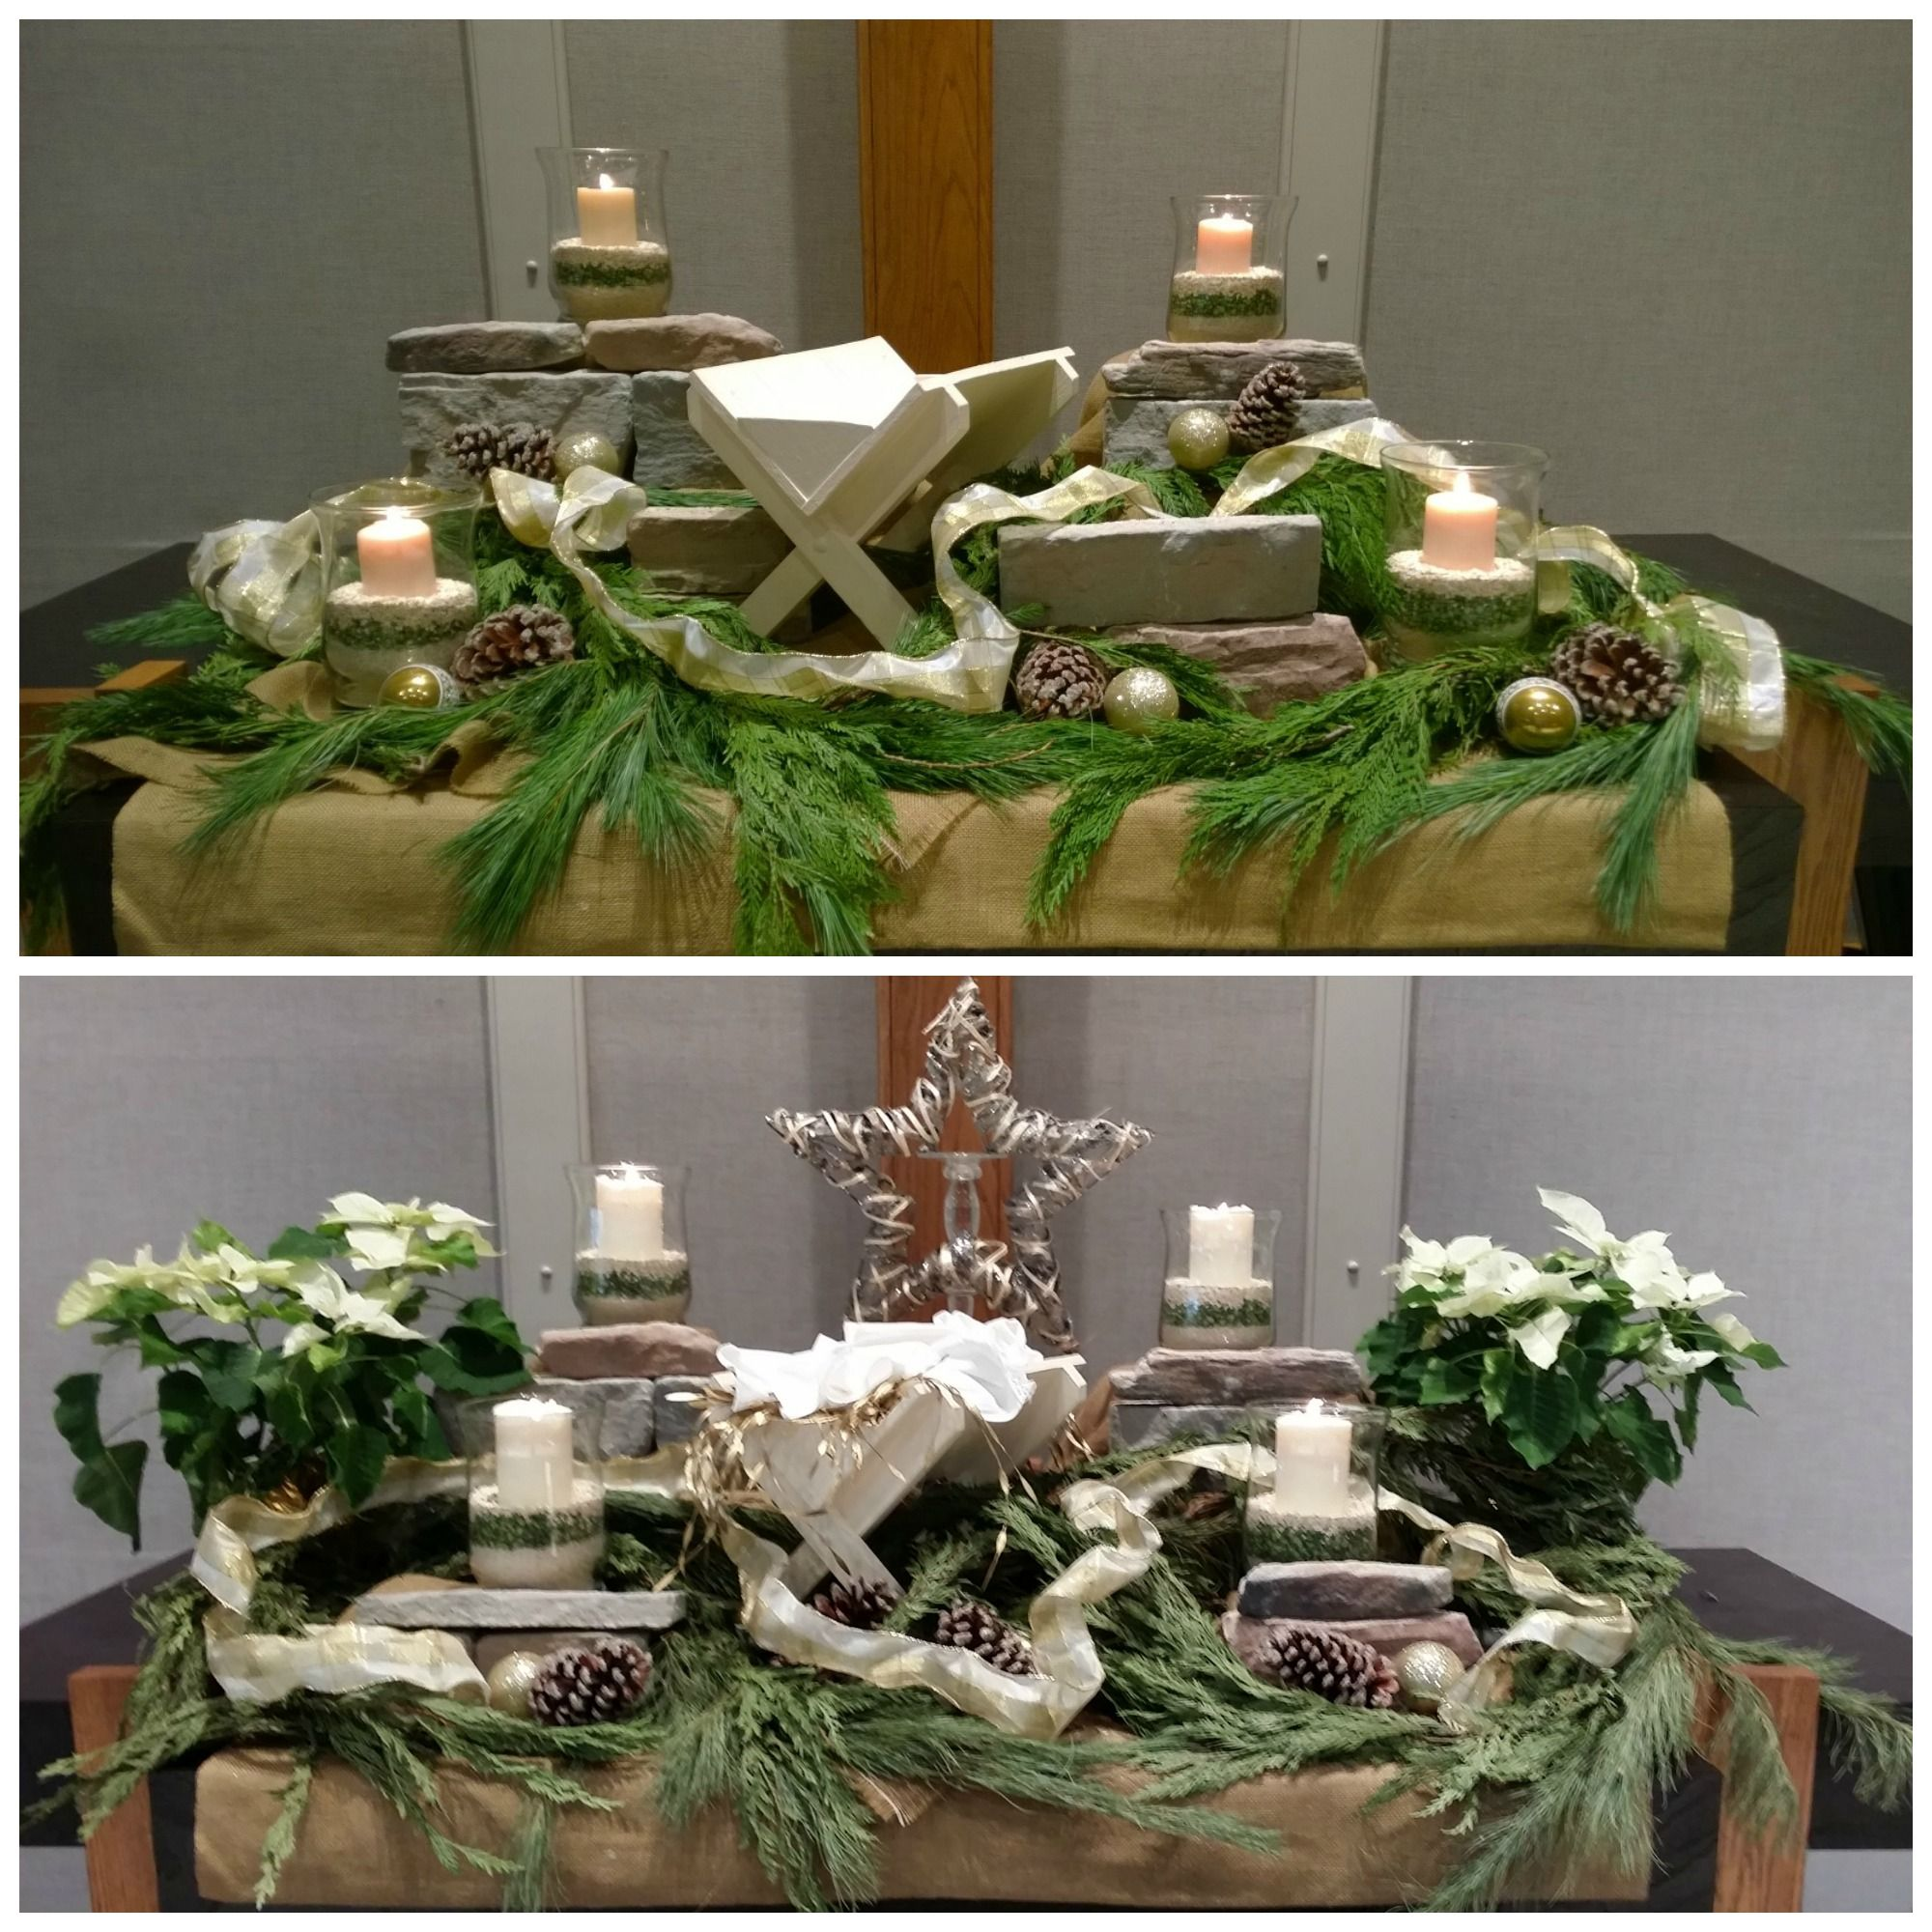 Simple Church Altar Decorations: Natural Altar For December 2014. Top Photo Is Advent